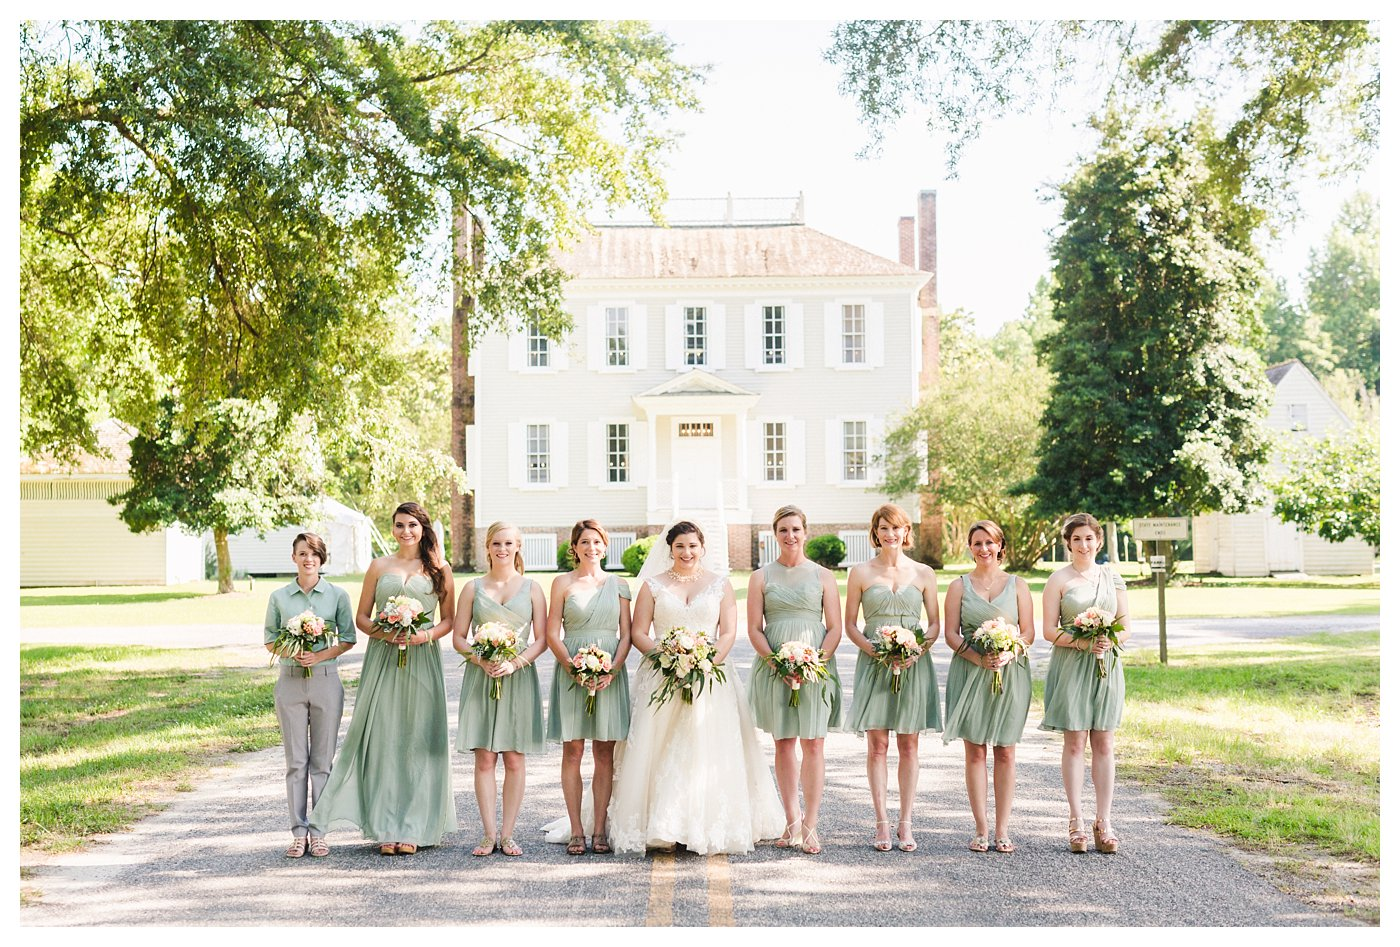 Historic_Hope_Plantation_Wedding_Photography_Sage_Summer_Outdoor_Windsor_NC_0019.jpg